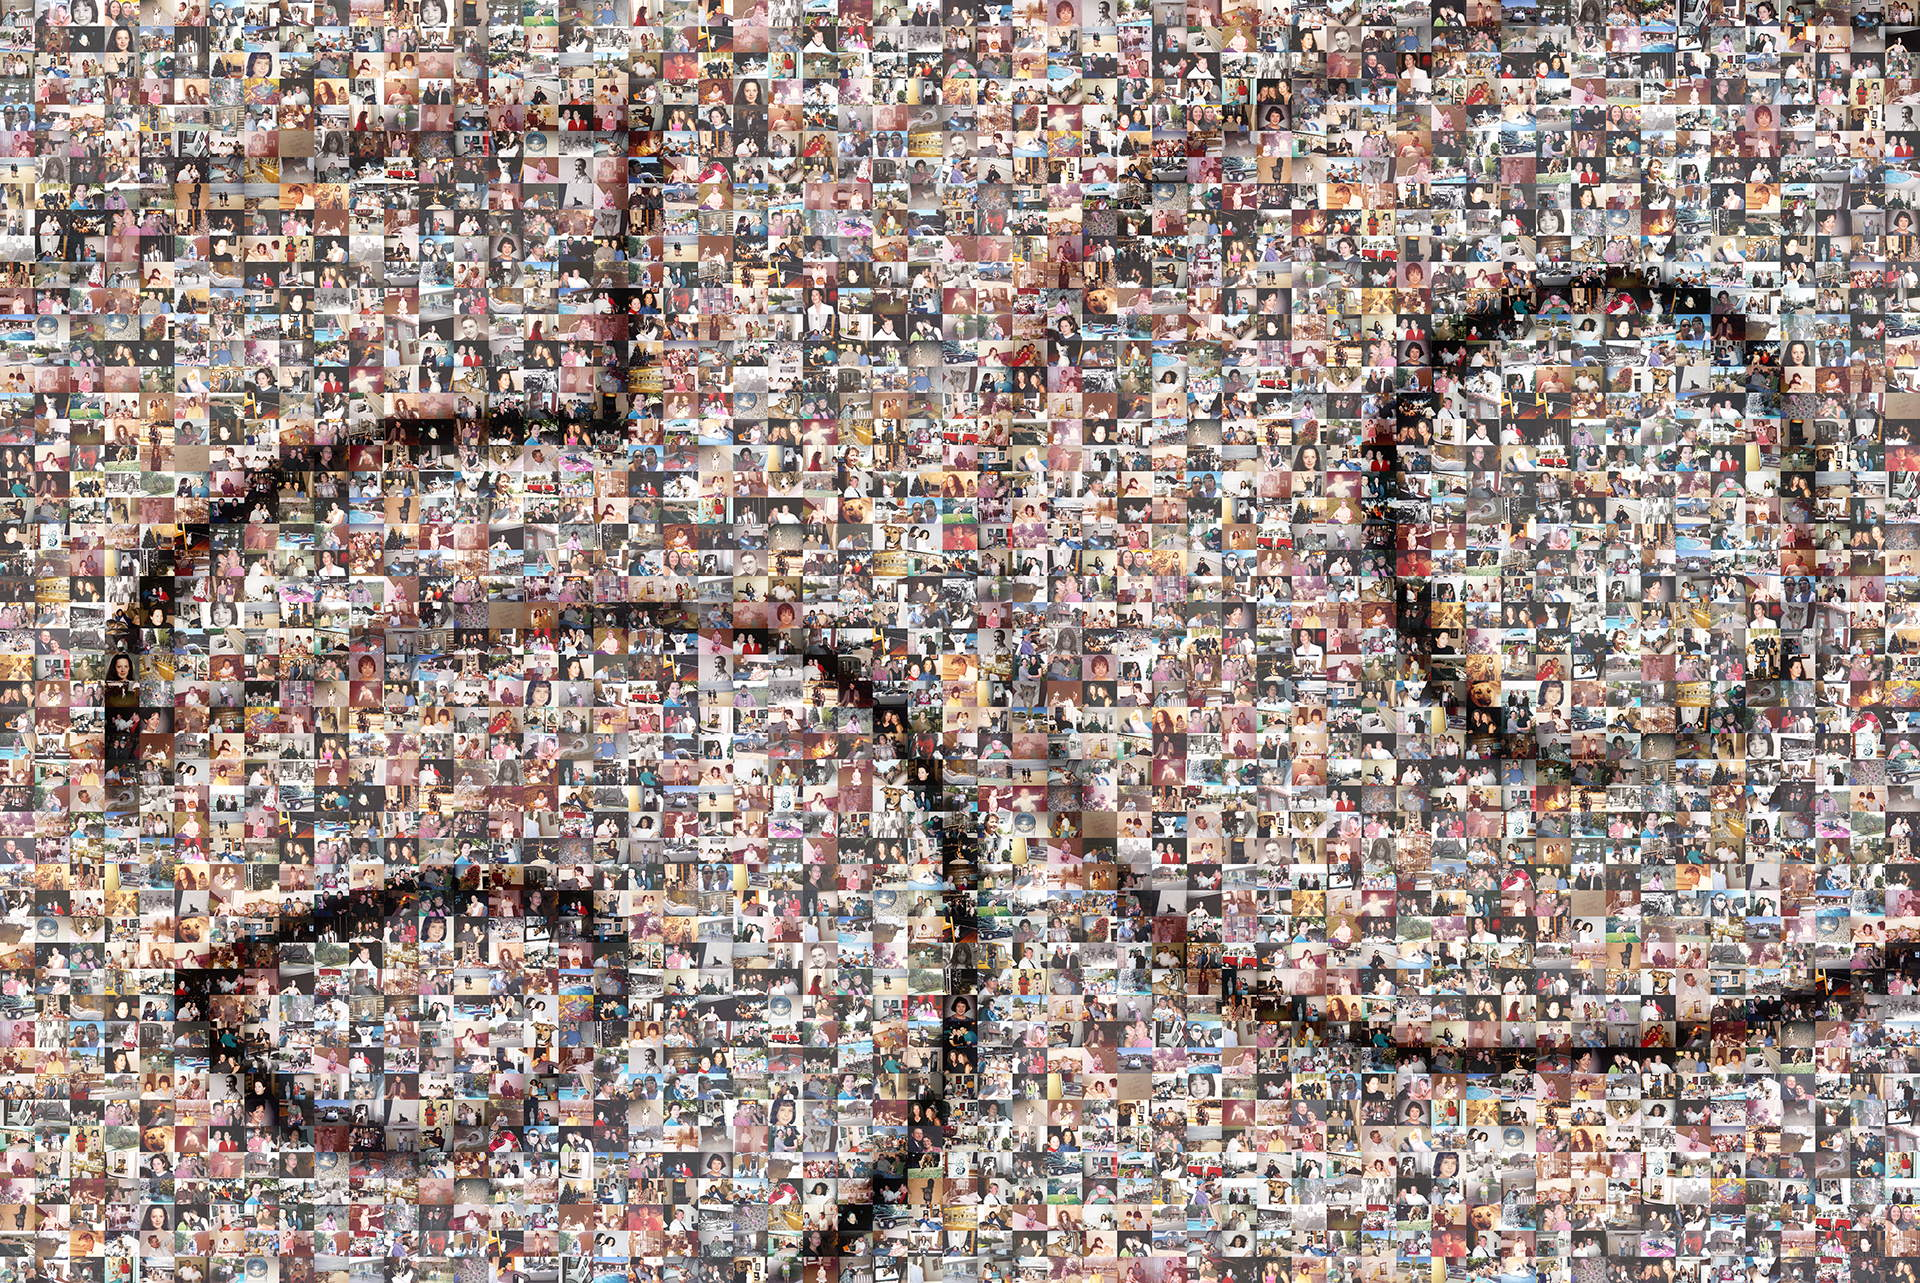 photo mosaic this birthday mosaic was created with 431 photos of family and friends